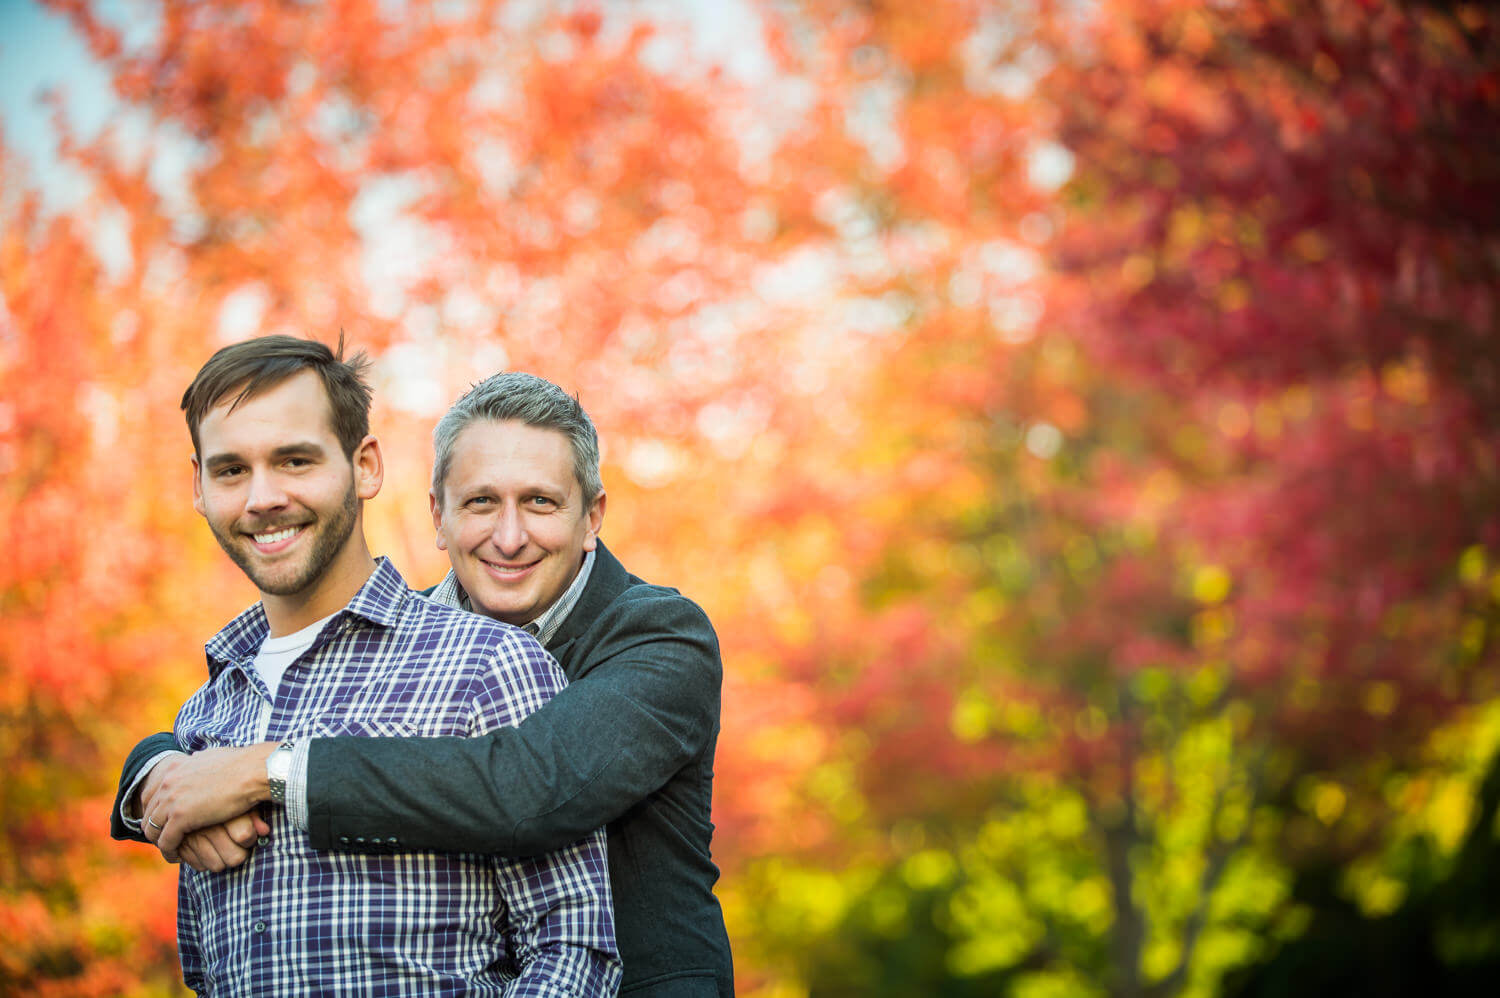 gay-wedding-couple-fall-colors.jpg